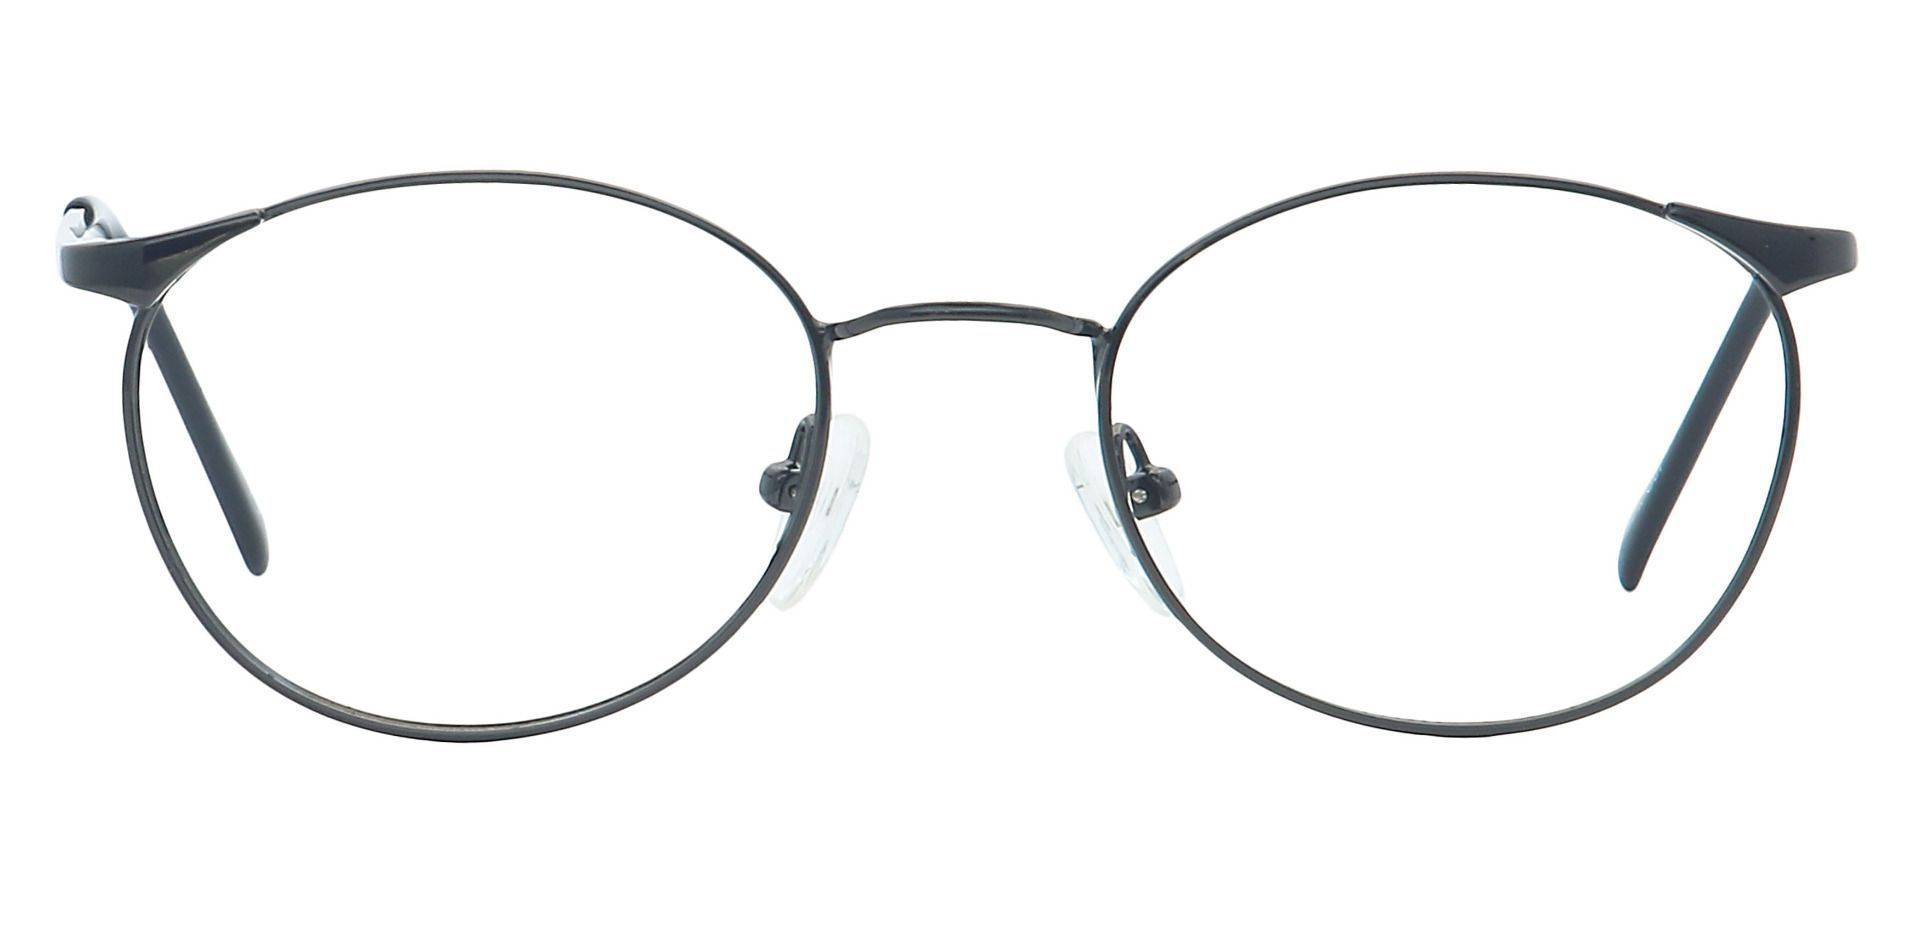 Collen Round Prescription Glasses - Gray